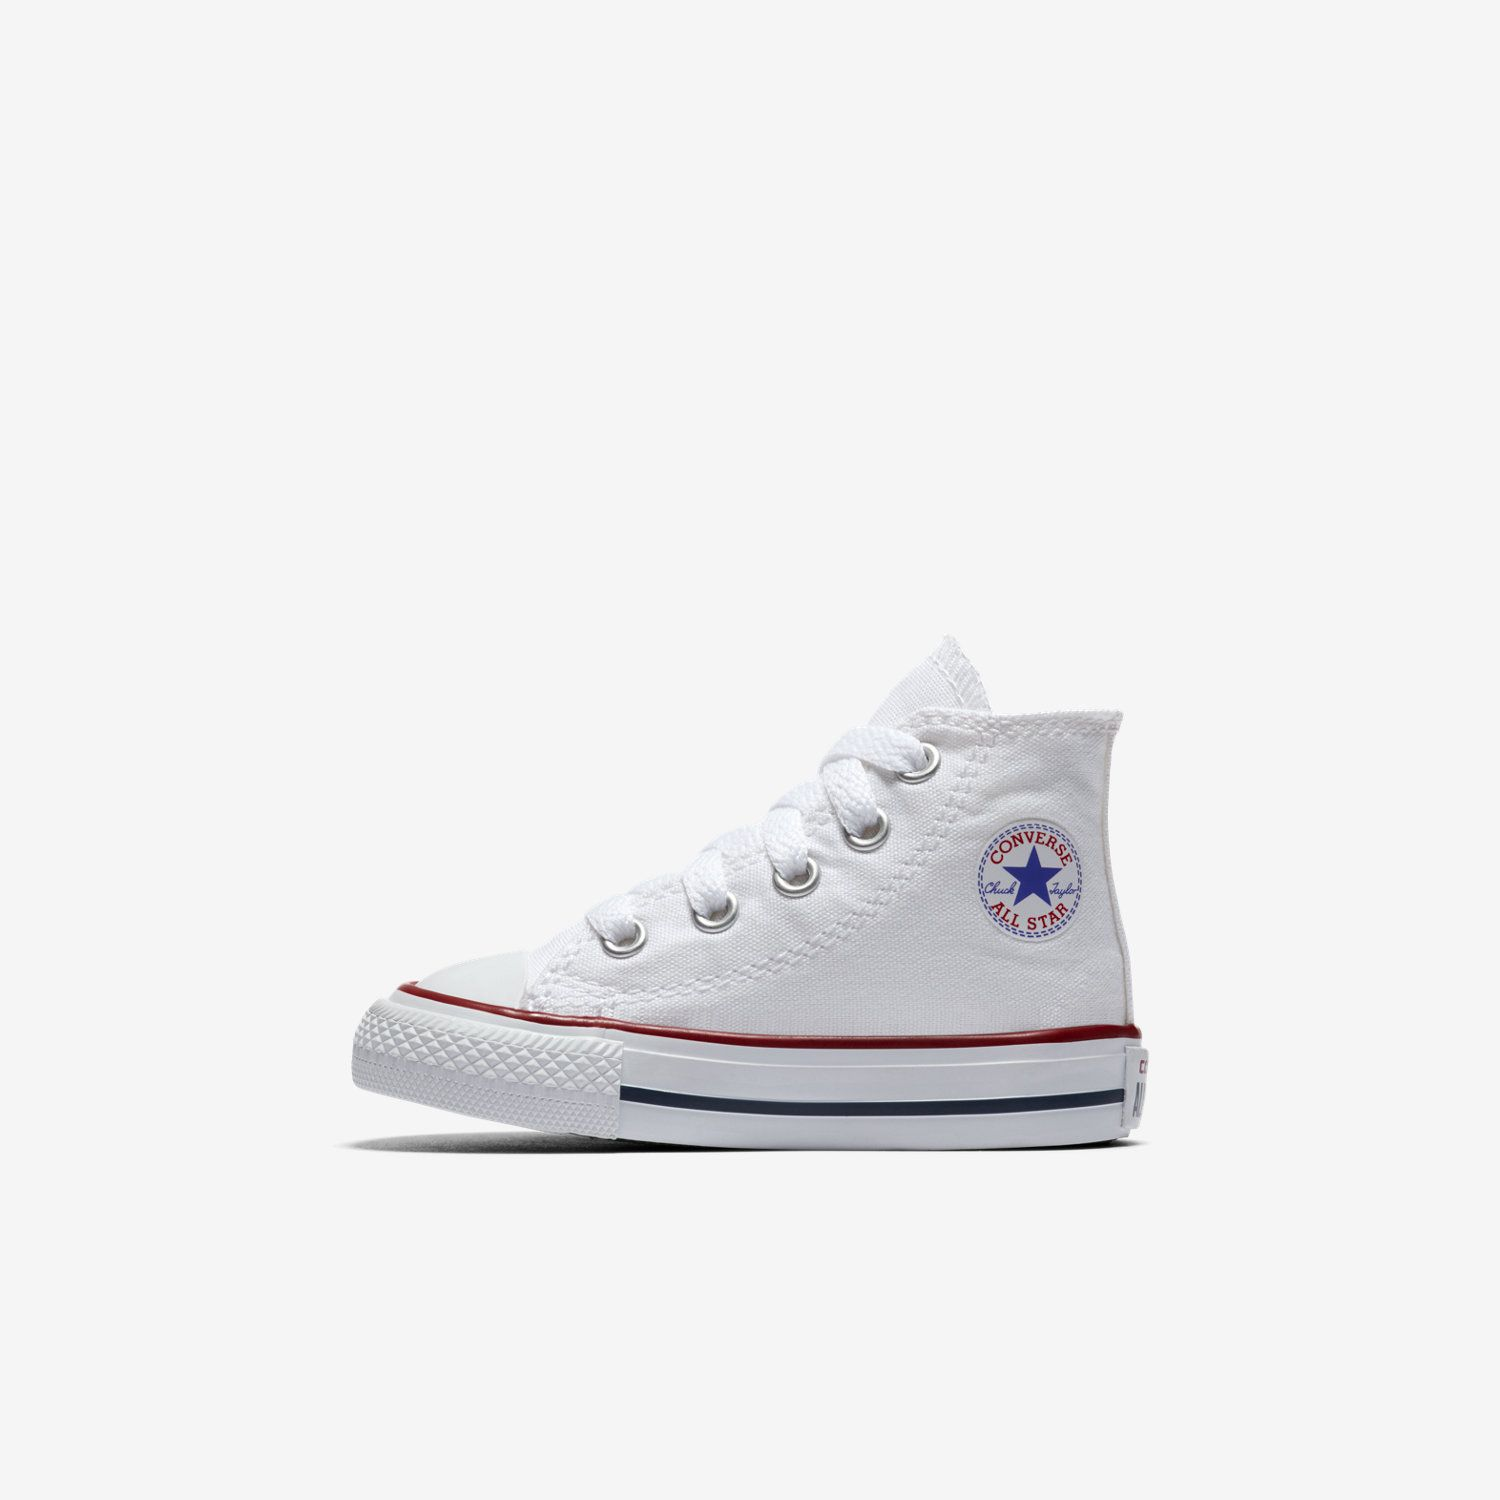 Toddler Converse – With All Purpose   Shoes   Chuck taylors